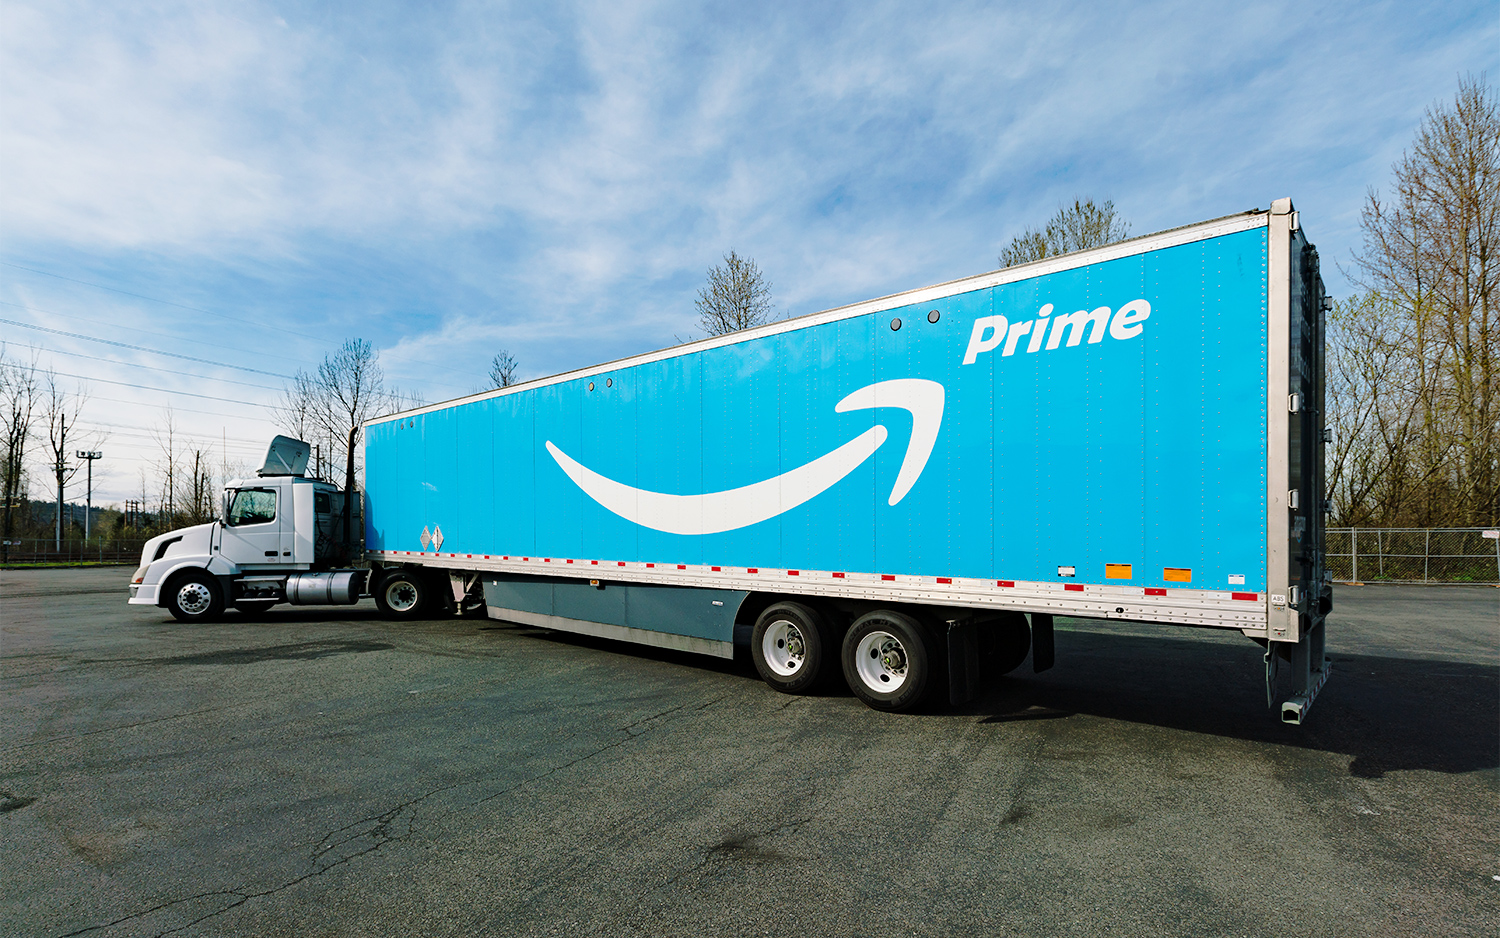 7 Things You Should Buy (and Avoid) on Amazon Prime Day